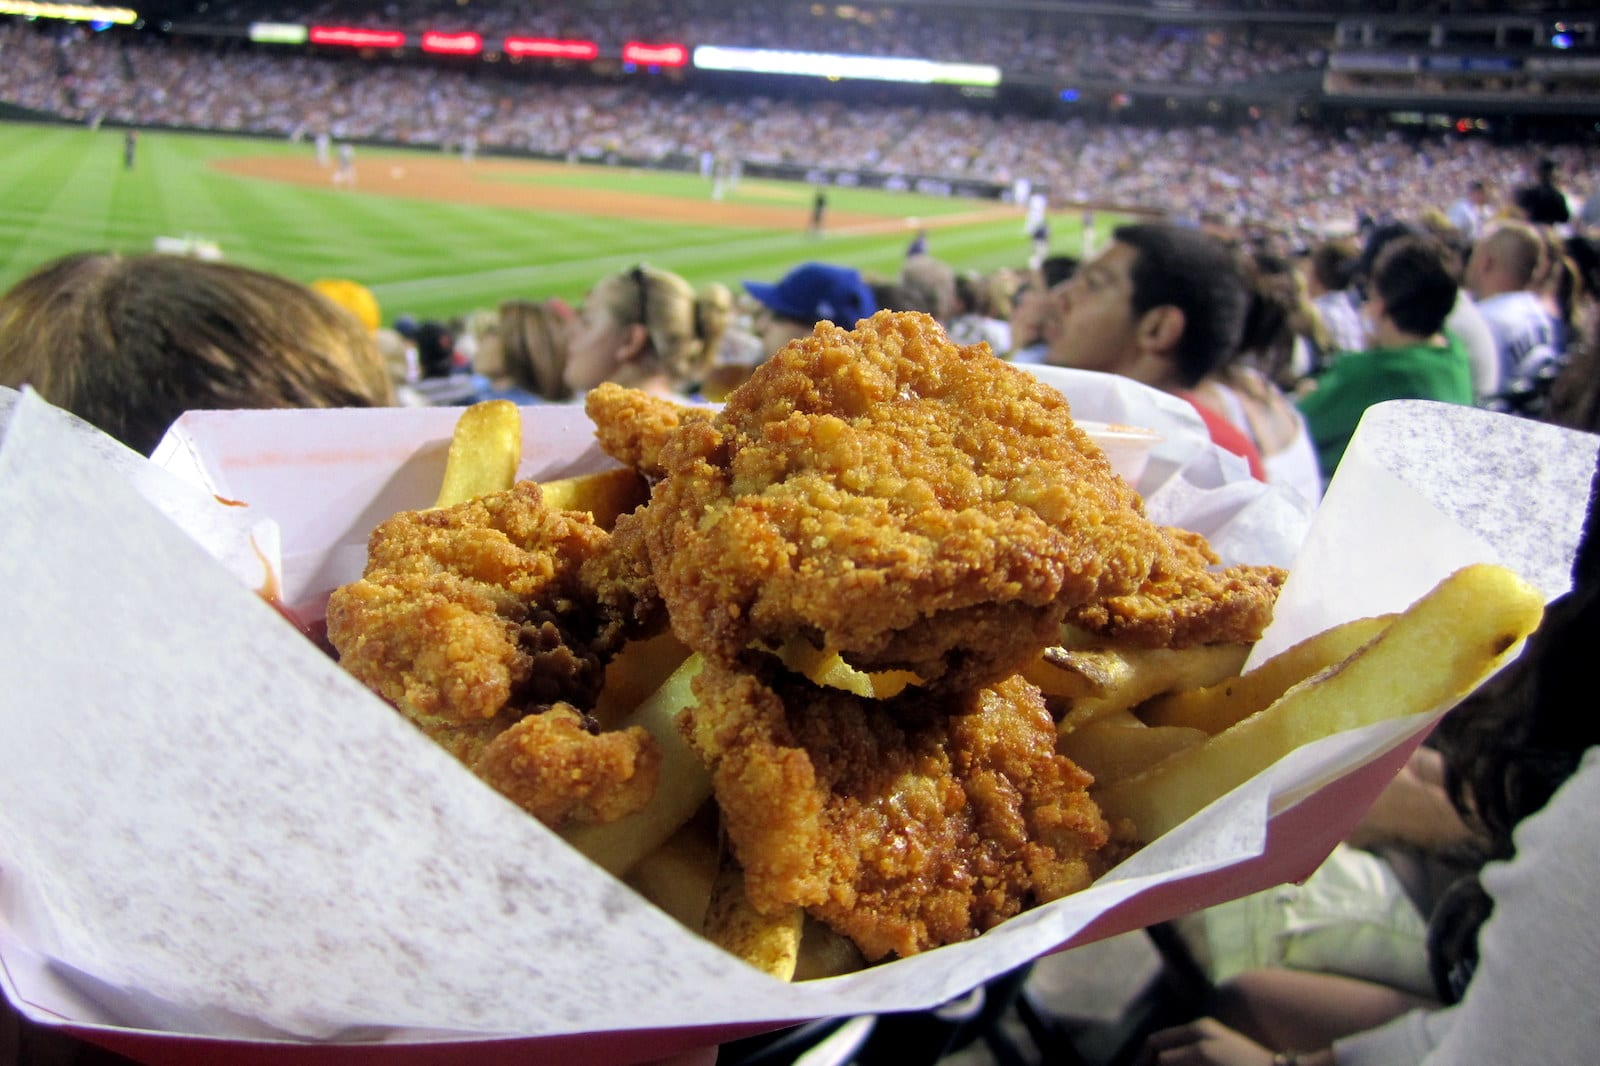 Colorado Terms Rocky Mountain Oysters at Coors Field